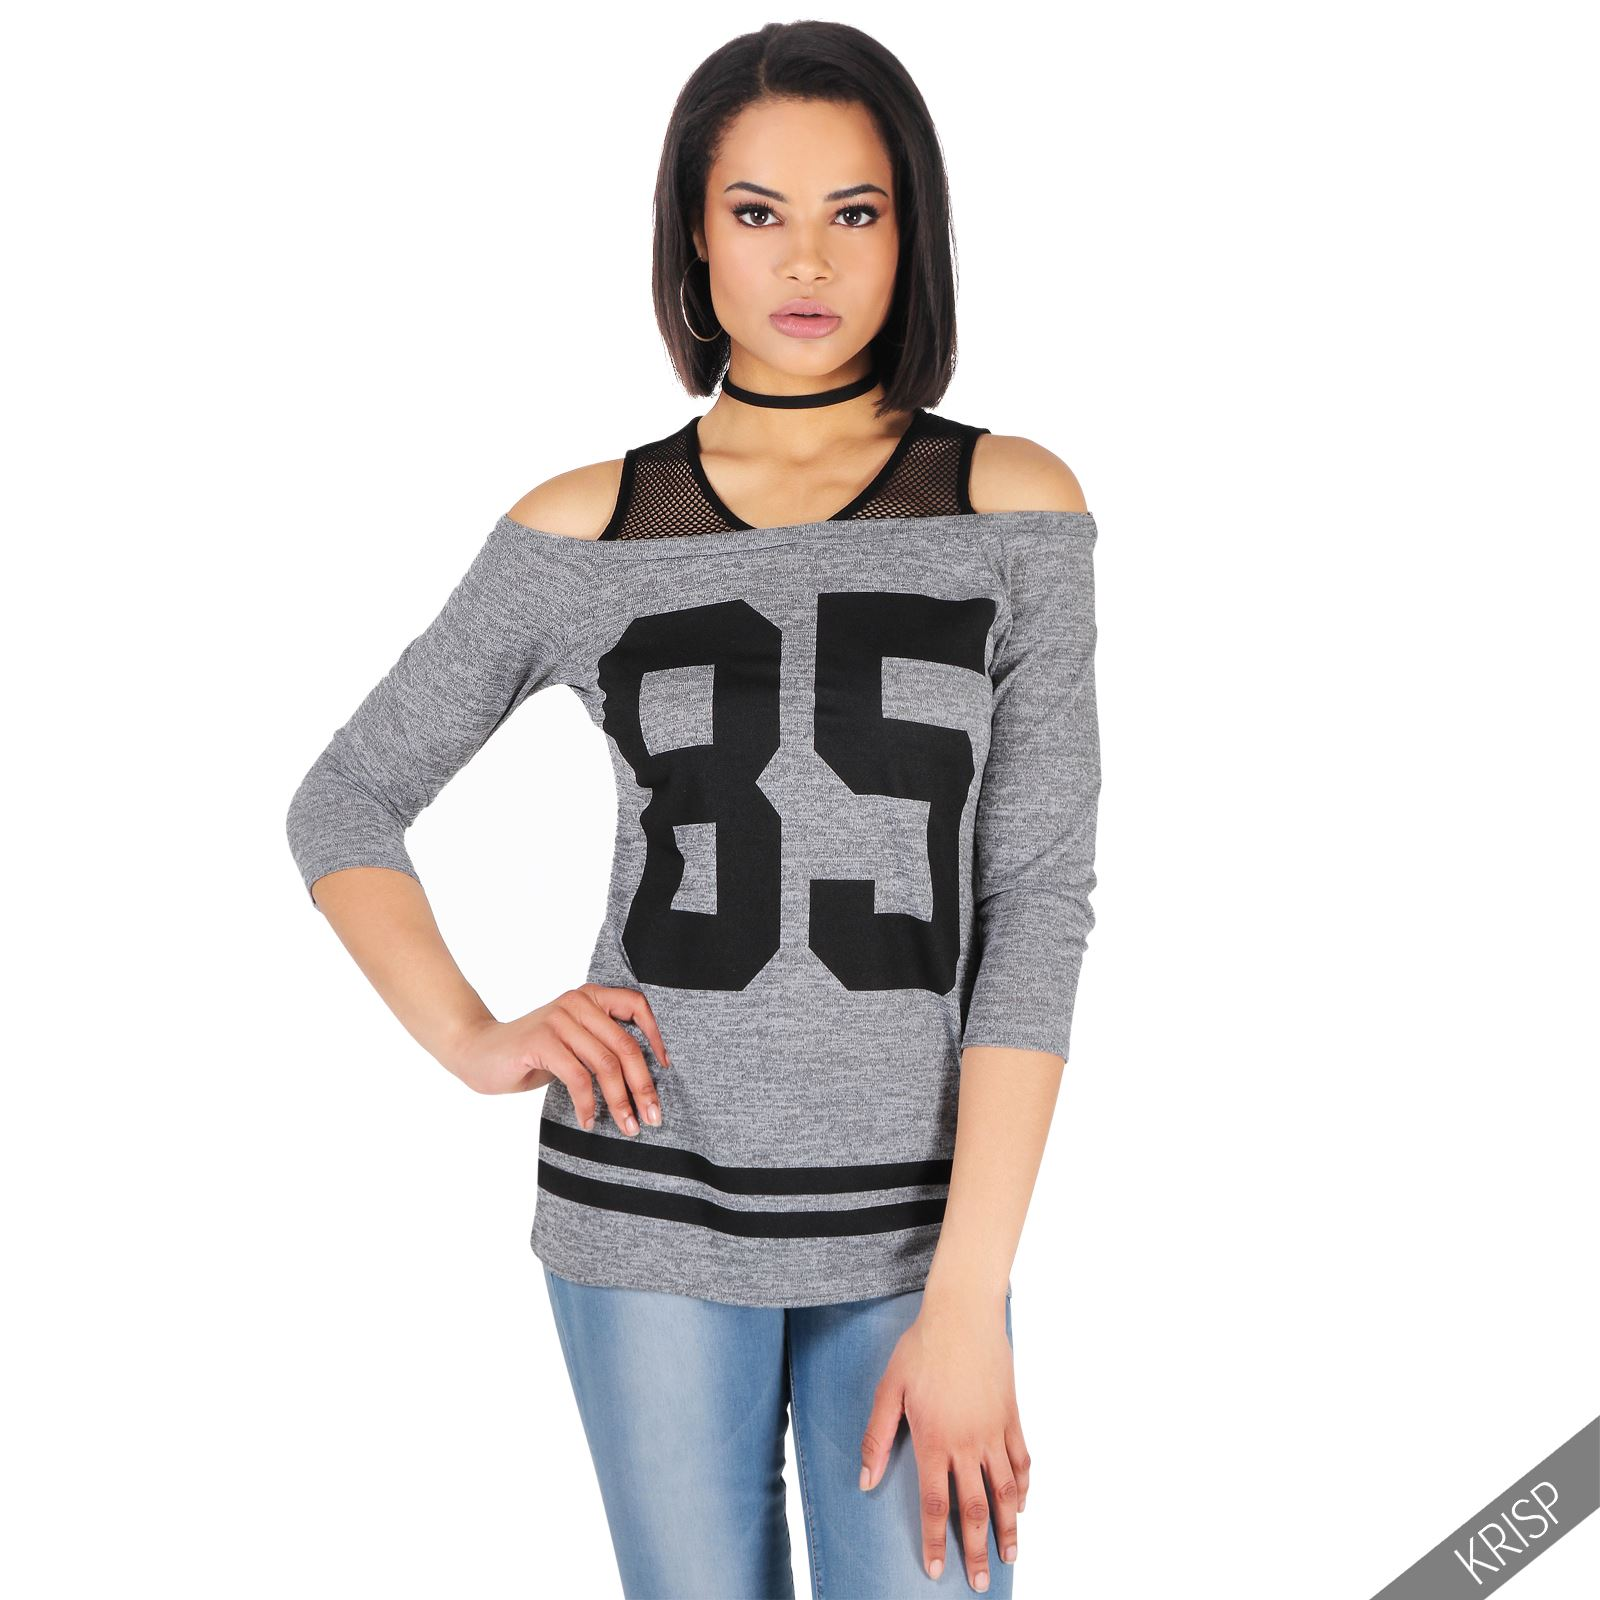 Find high quality Oversized Women's T-Shirts at CafePress. Shop a large selection of custom t-shirts, longsleeves, sweatshirts, tanks and more.